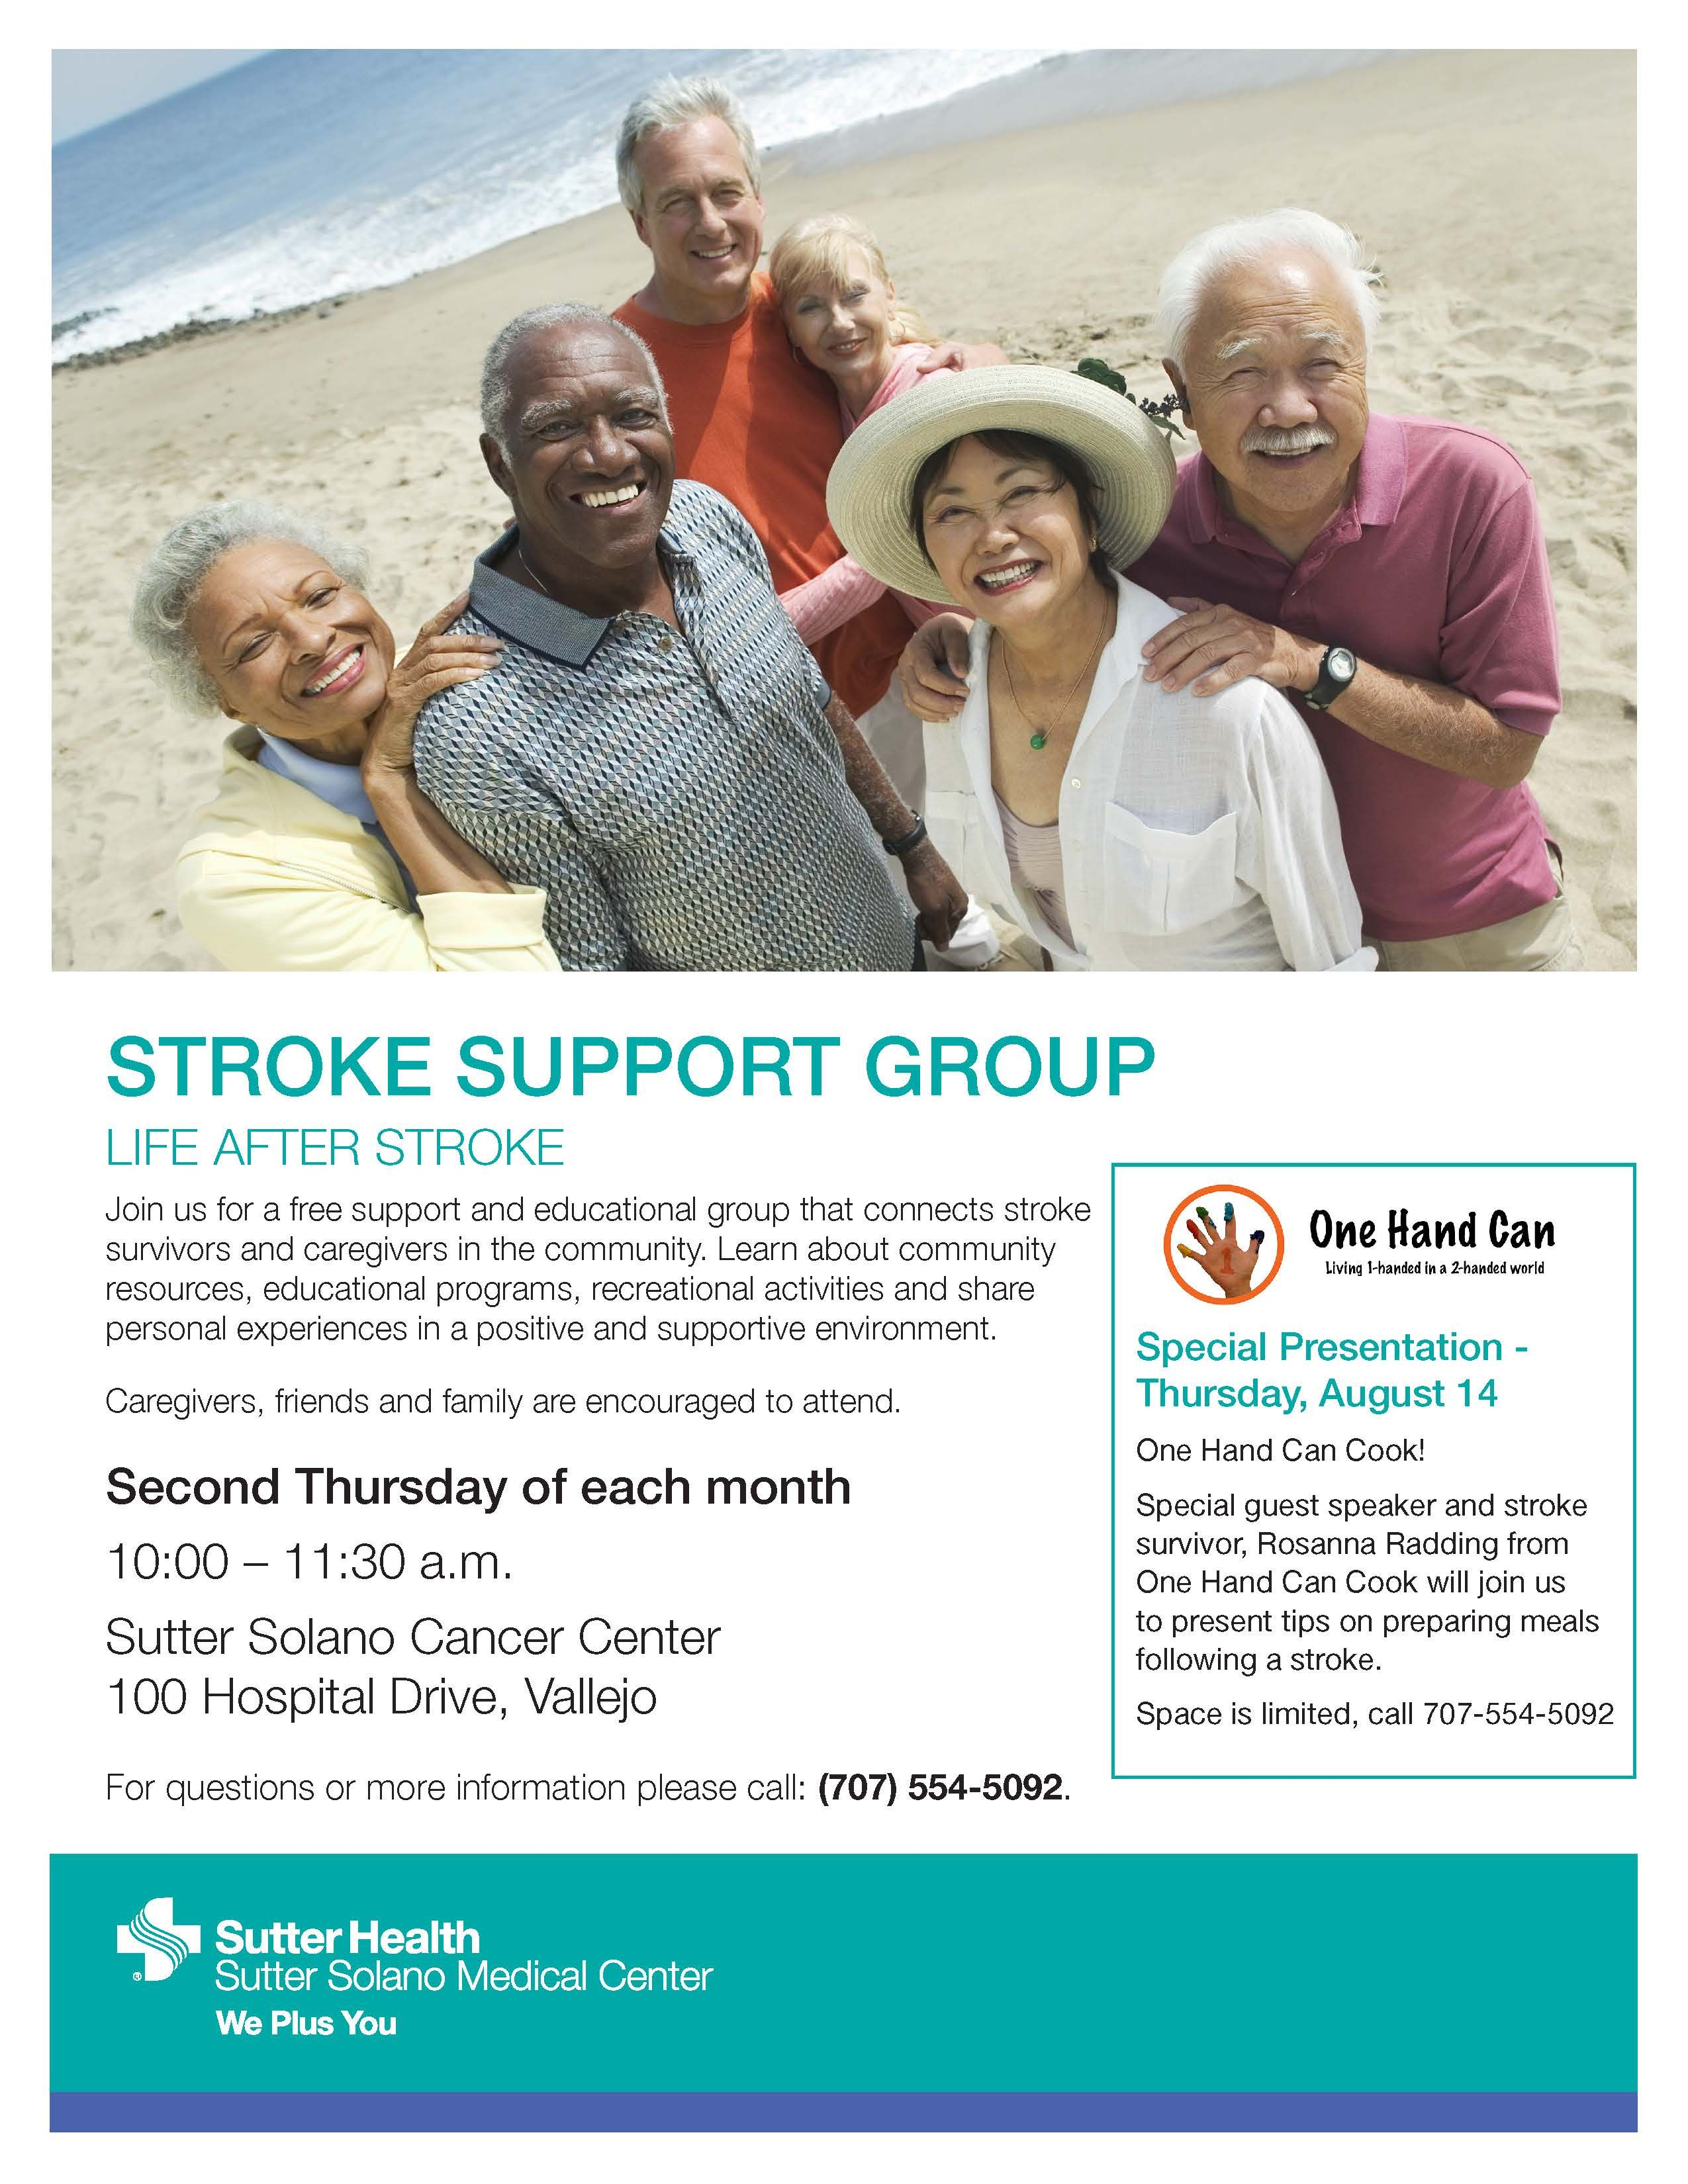 Pin by Sutter Health Sacramento Valley Area on Events